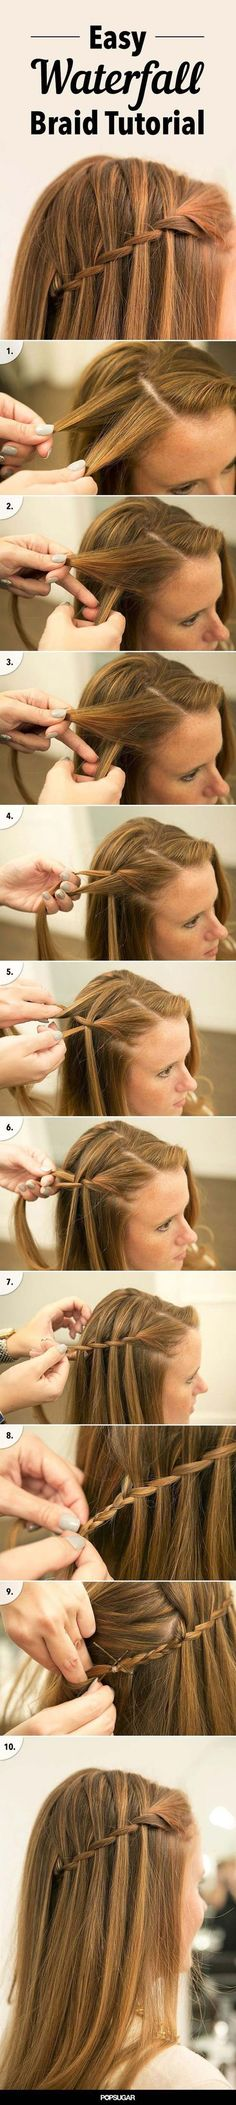 Best Hairstyles for Long Hair - Waterfall Braid Tutorial- Step by Step Tutorials for Easy Curls, Updo, Half Up, Braids and Lazy Girl Looks. Prom Ideas, Special Occasion Hair and Braiding Instructions for Teens, Teenagers and Adults, Women and Girls http://diyprojectsforteens.com/best-hairstyles-long-hair #girlhairstylesforlonghair